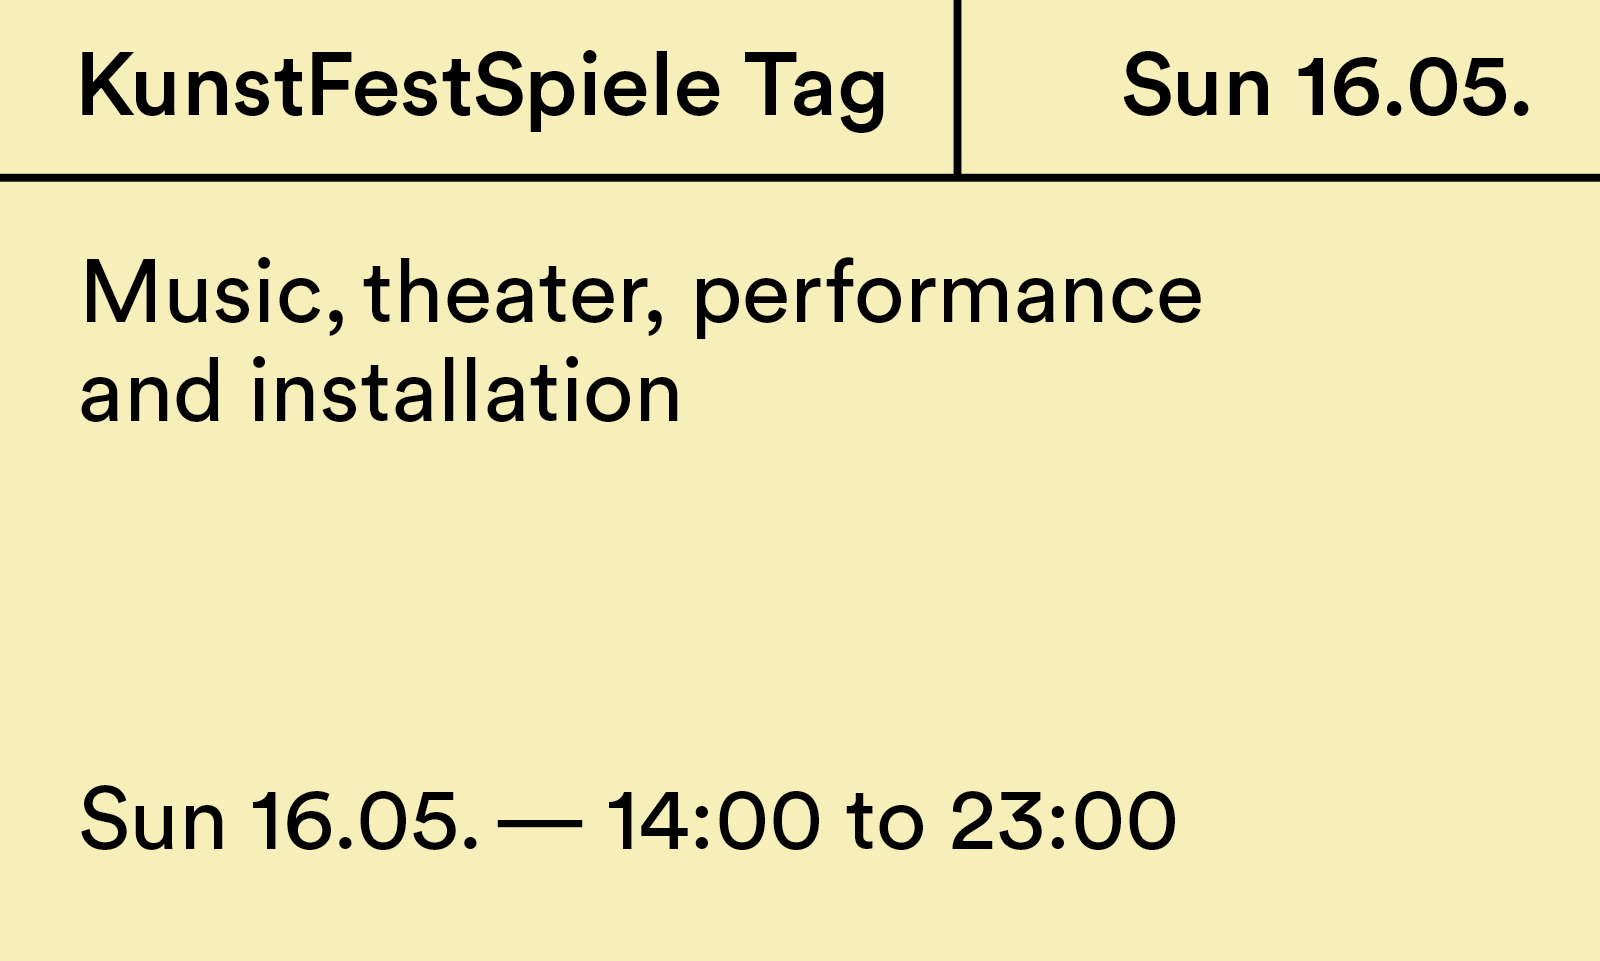 The KunstFestSpiele Tag 2021